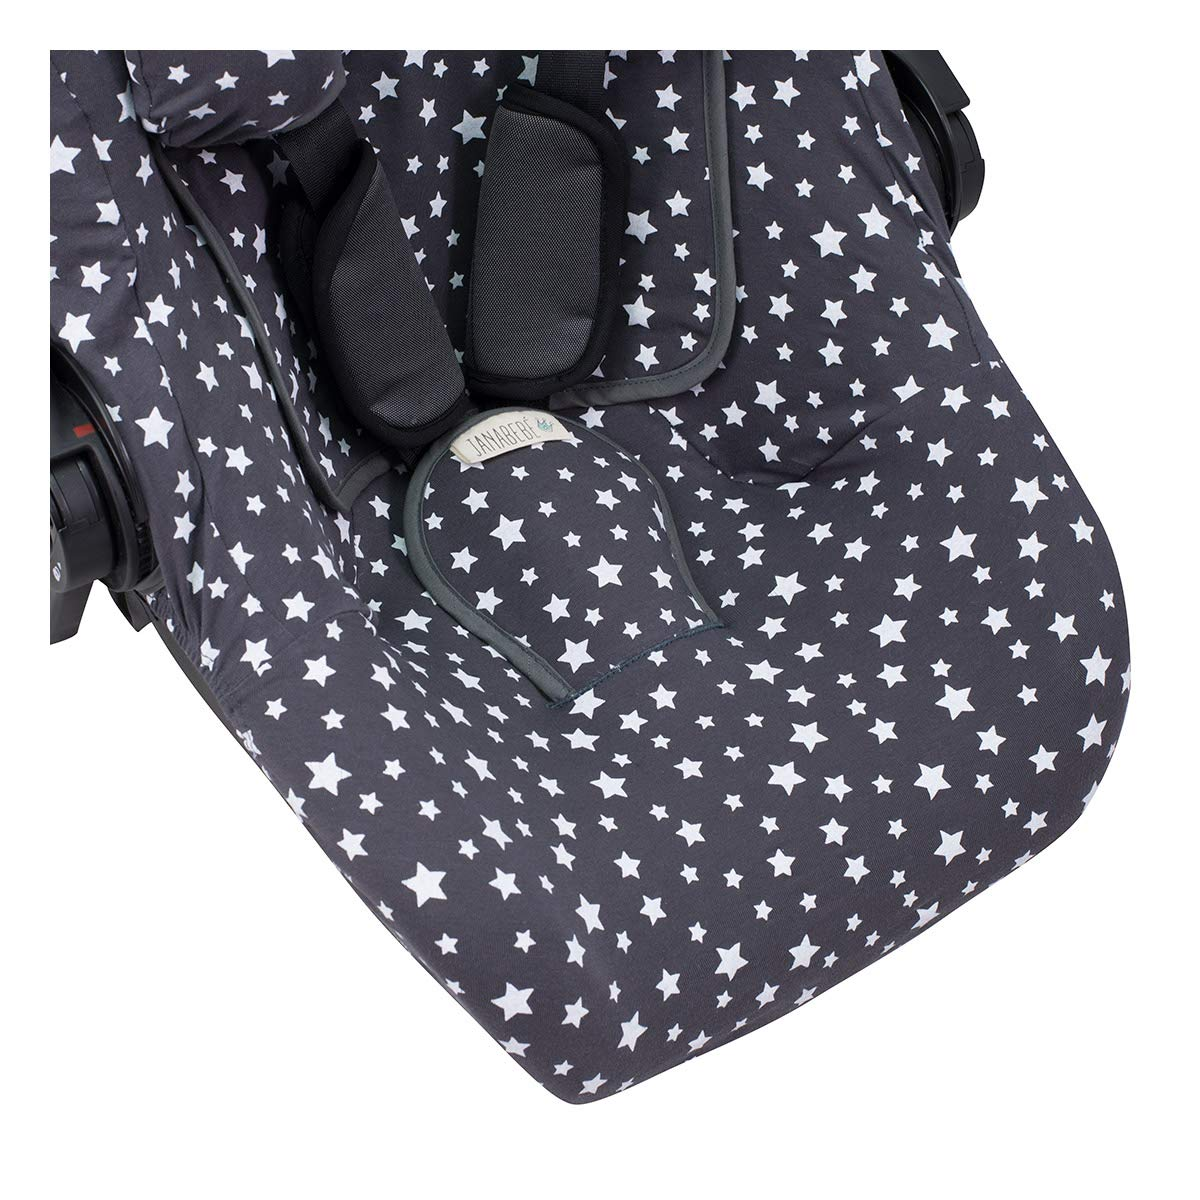 Concord Neo Air Safe and Romer Baby Safe Janabeb/é Cover Liner for Koos I-Size White Star